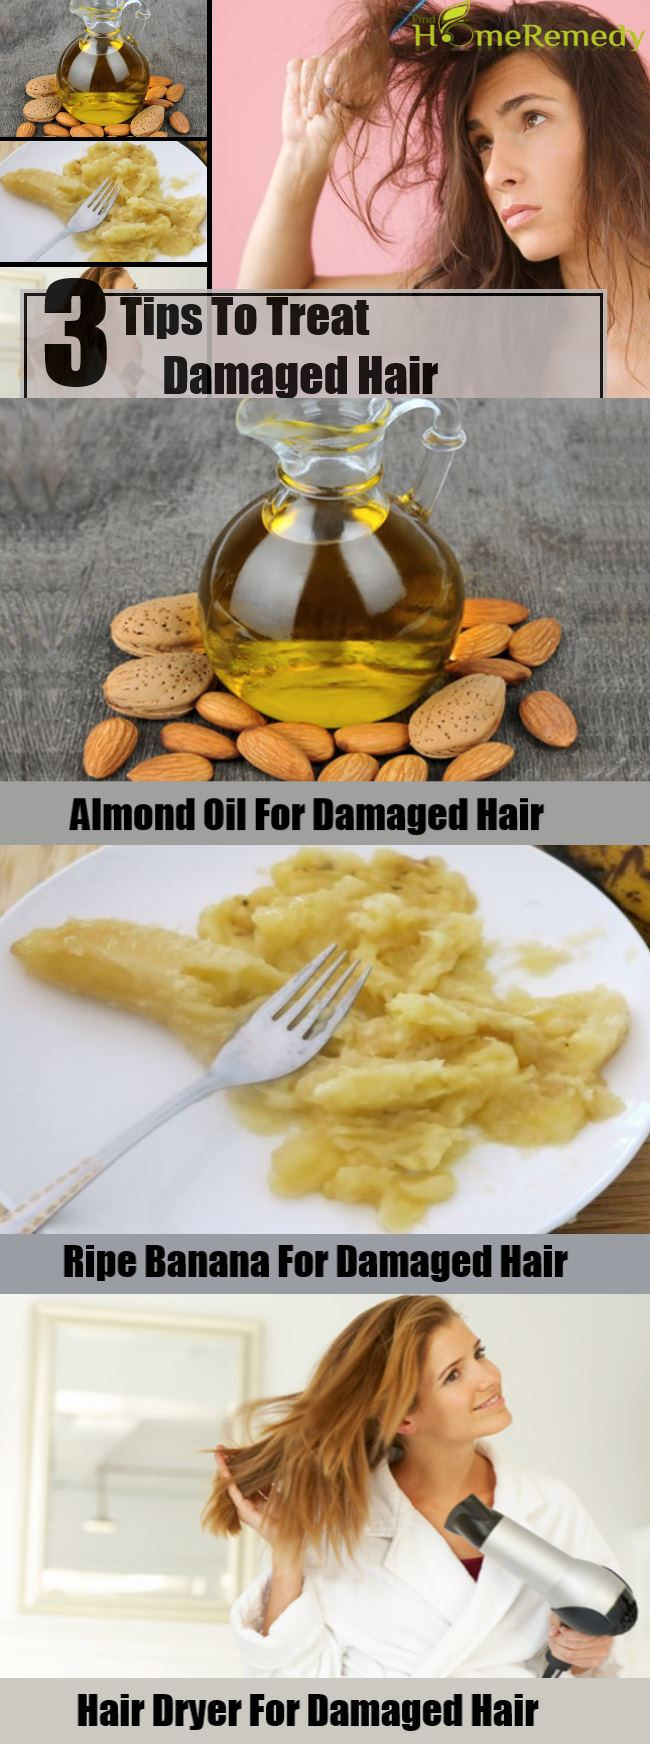 3 Tips To Treat Damaged Hair